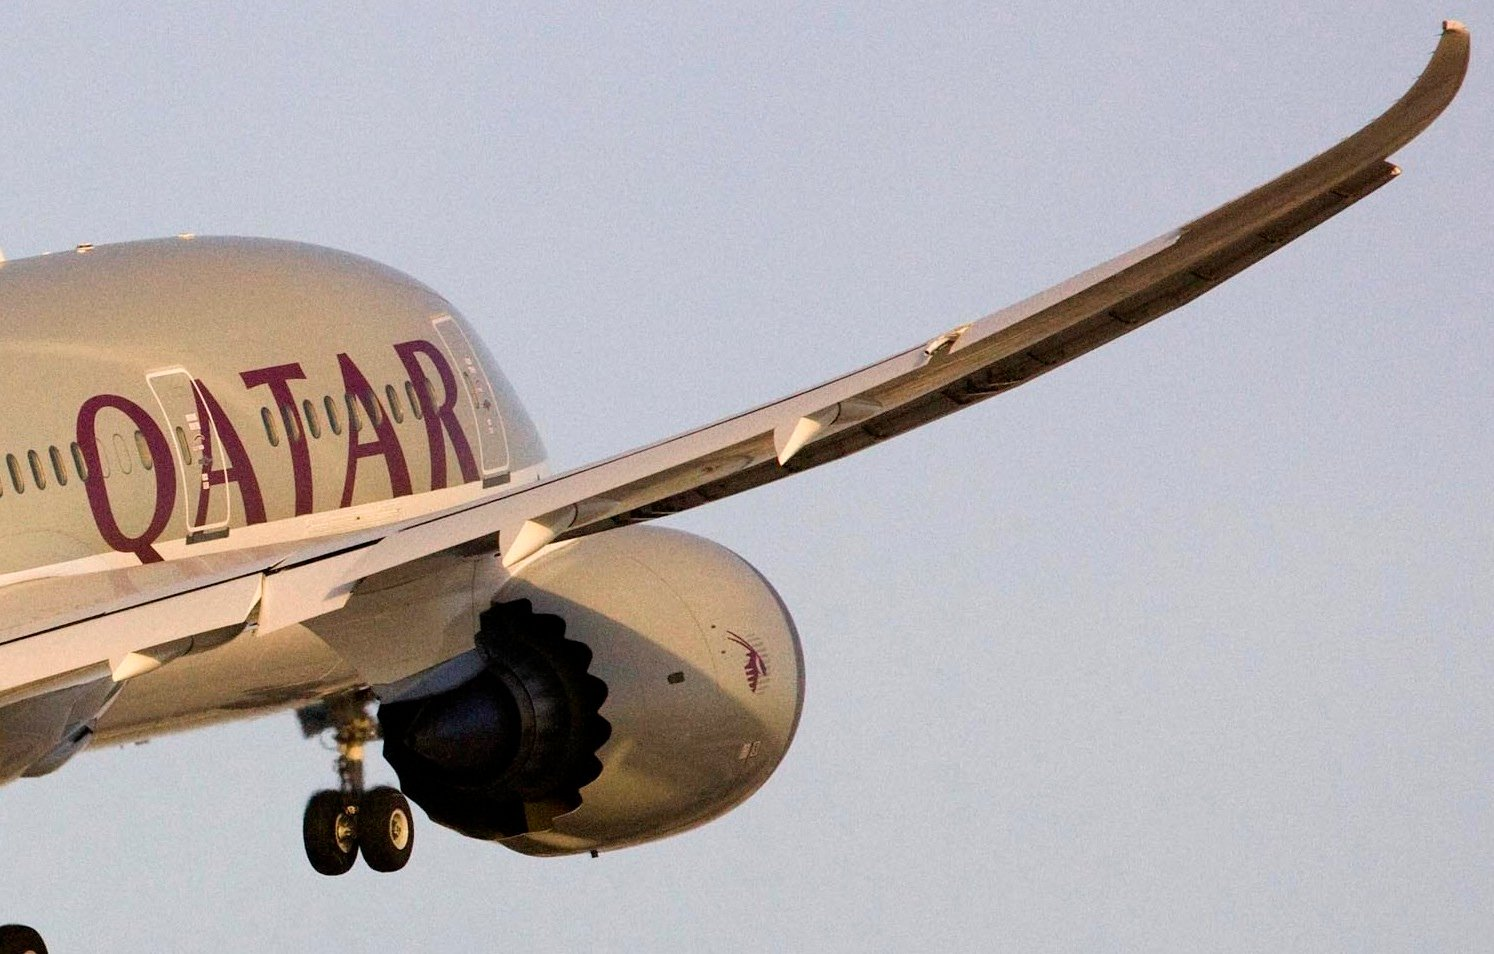 Qatar Airways To Cut Surcharge Following Oil Price Drop